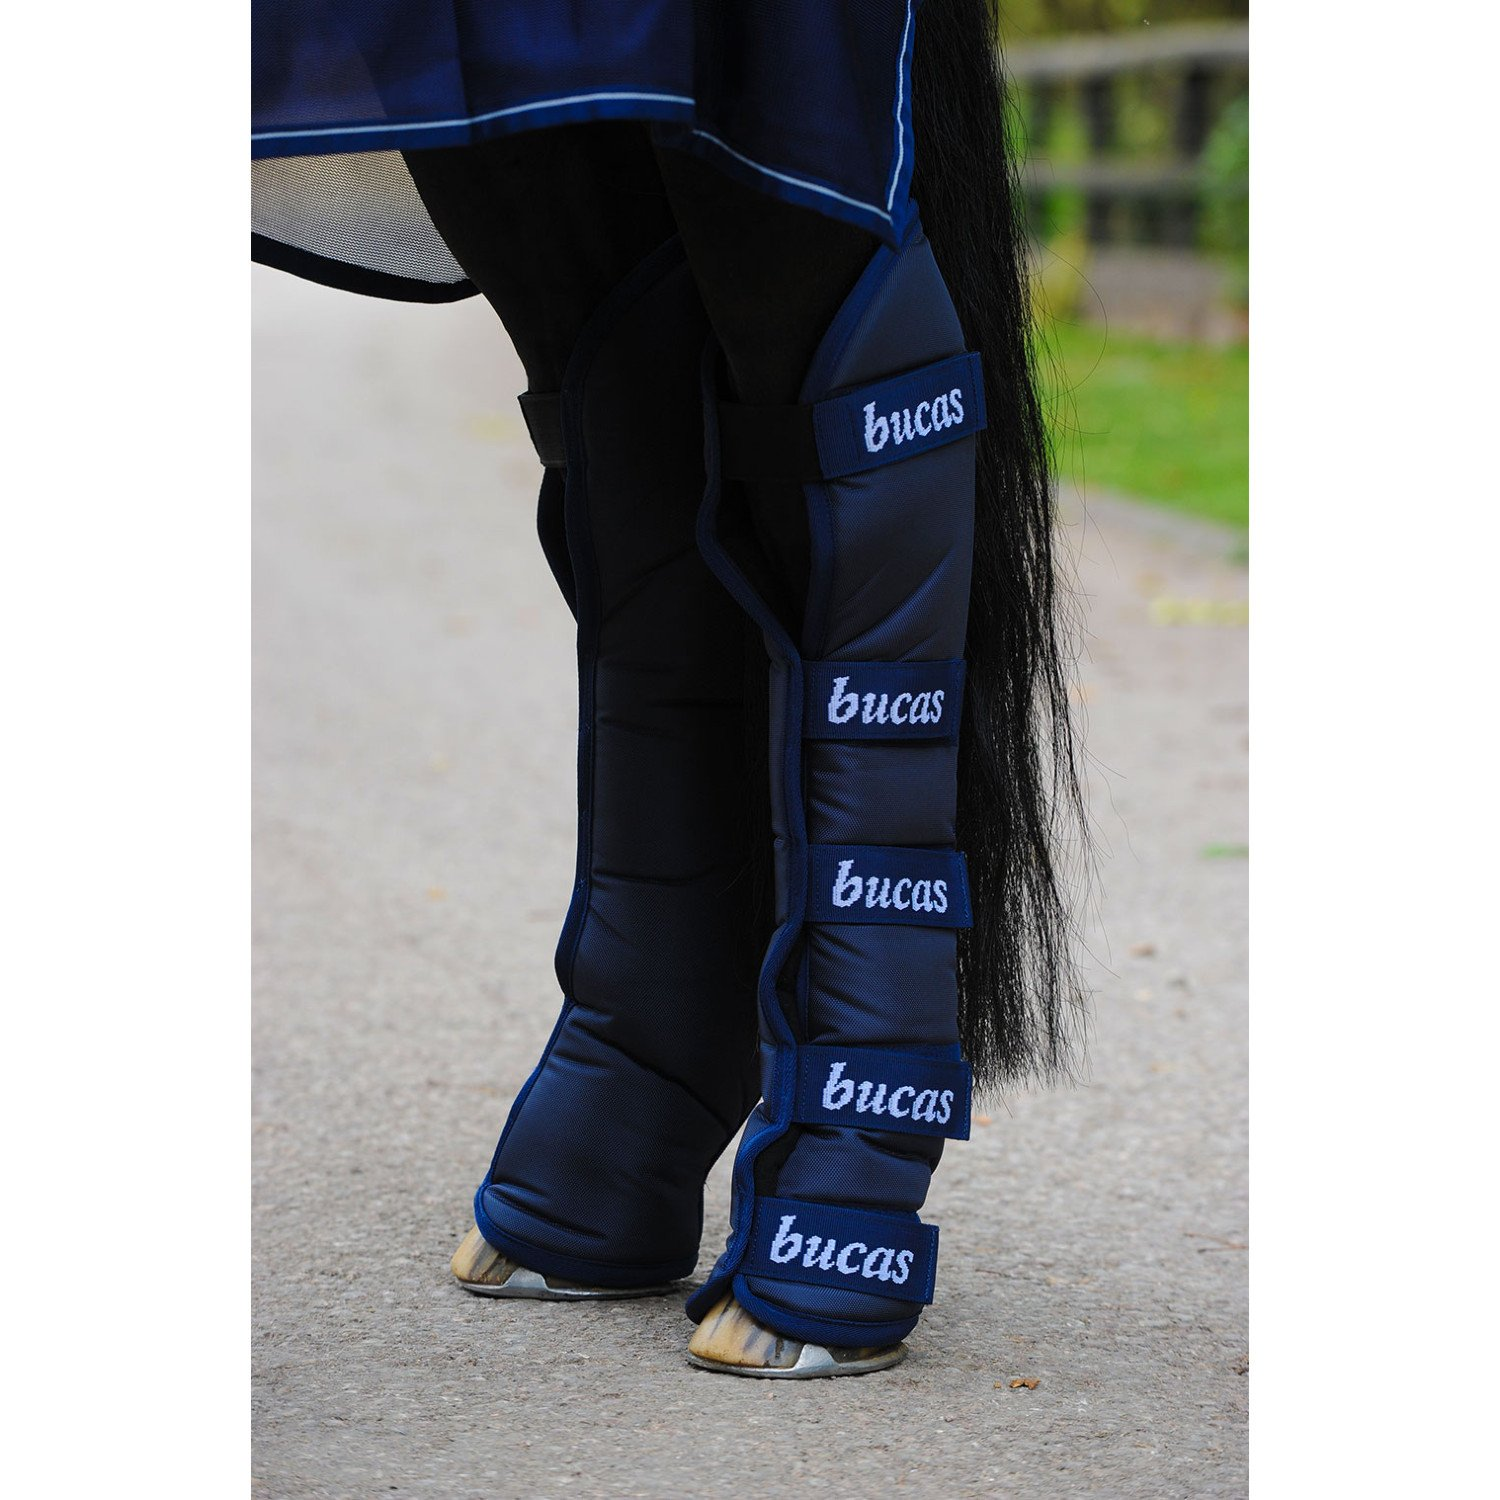 Bucas 2000 Travel Boot Full Size Navy by Bucas